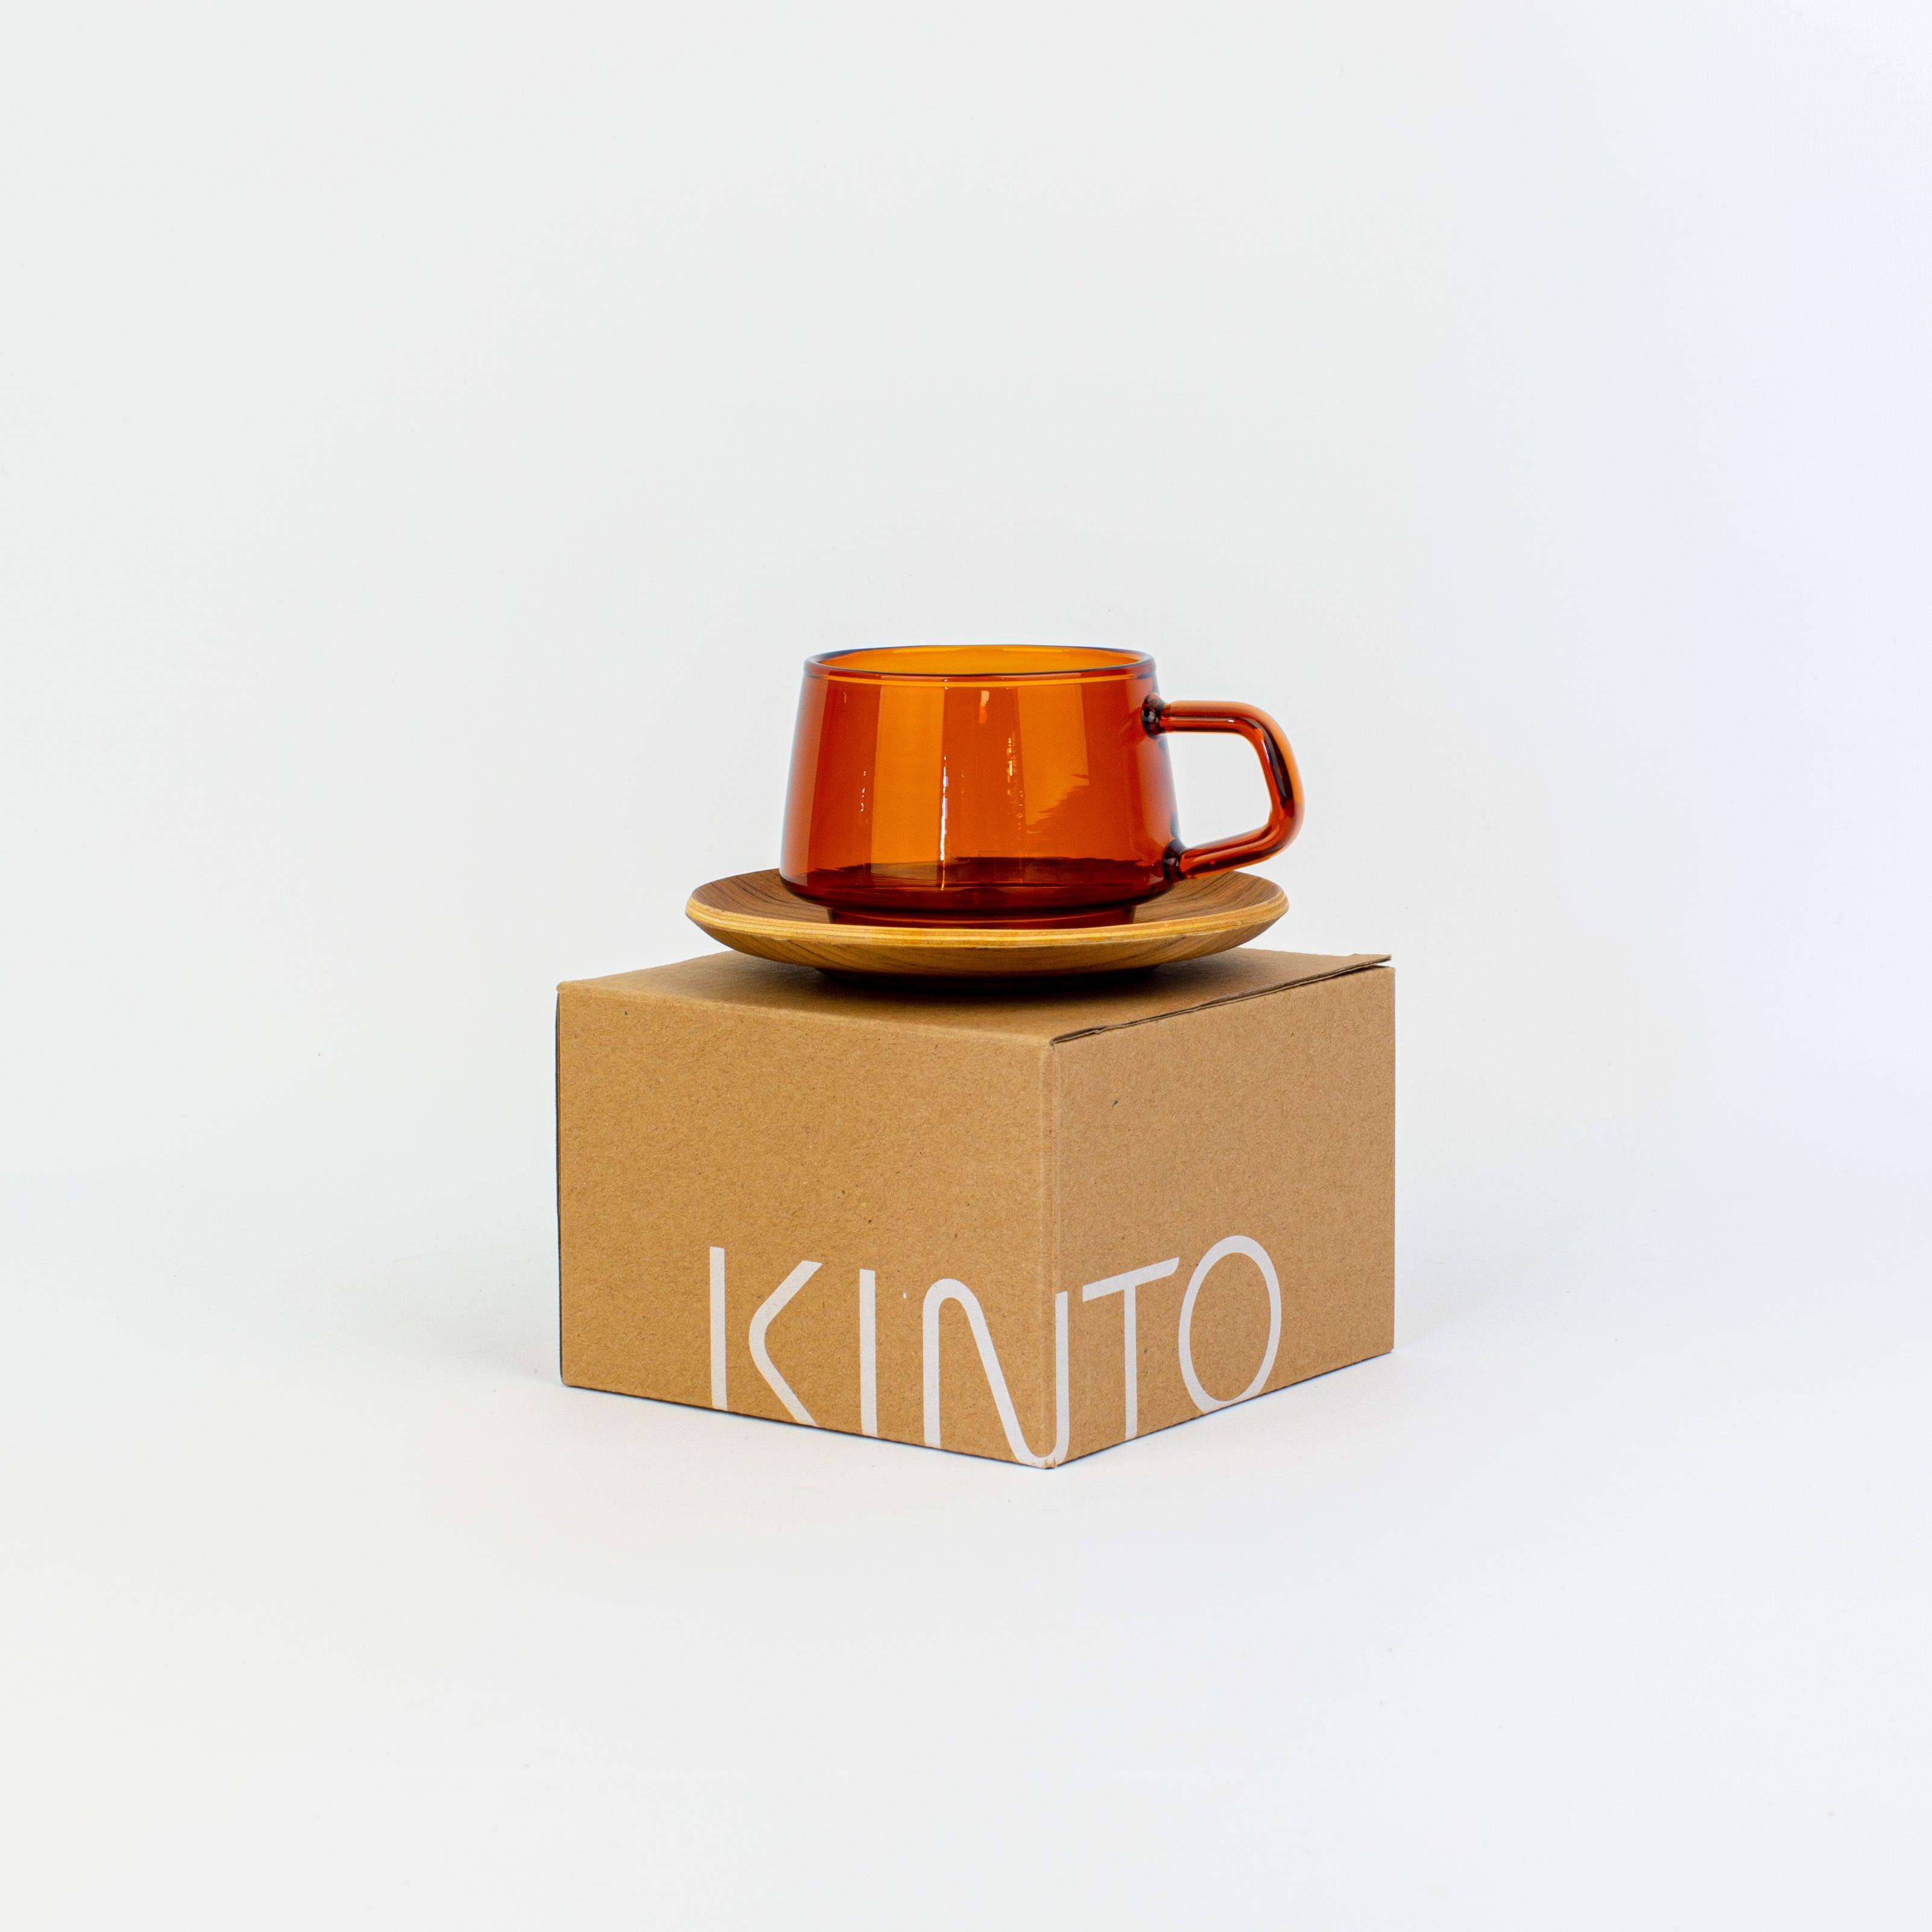 kinto sepia cup speciality coffee roaster west midlands